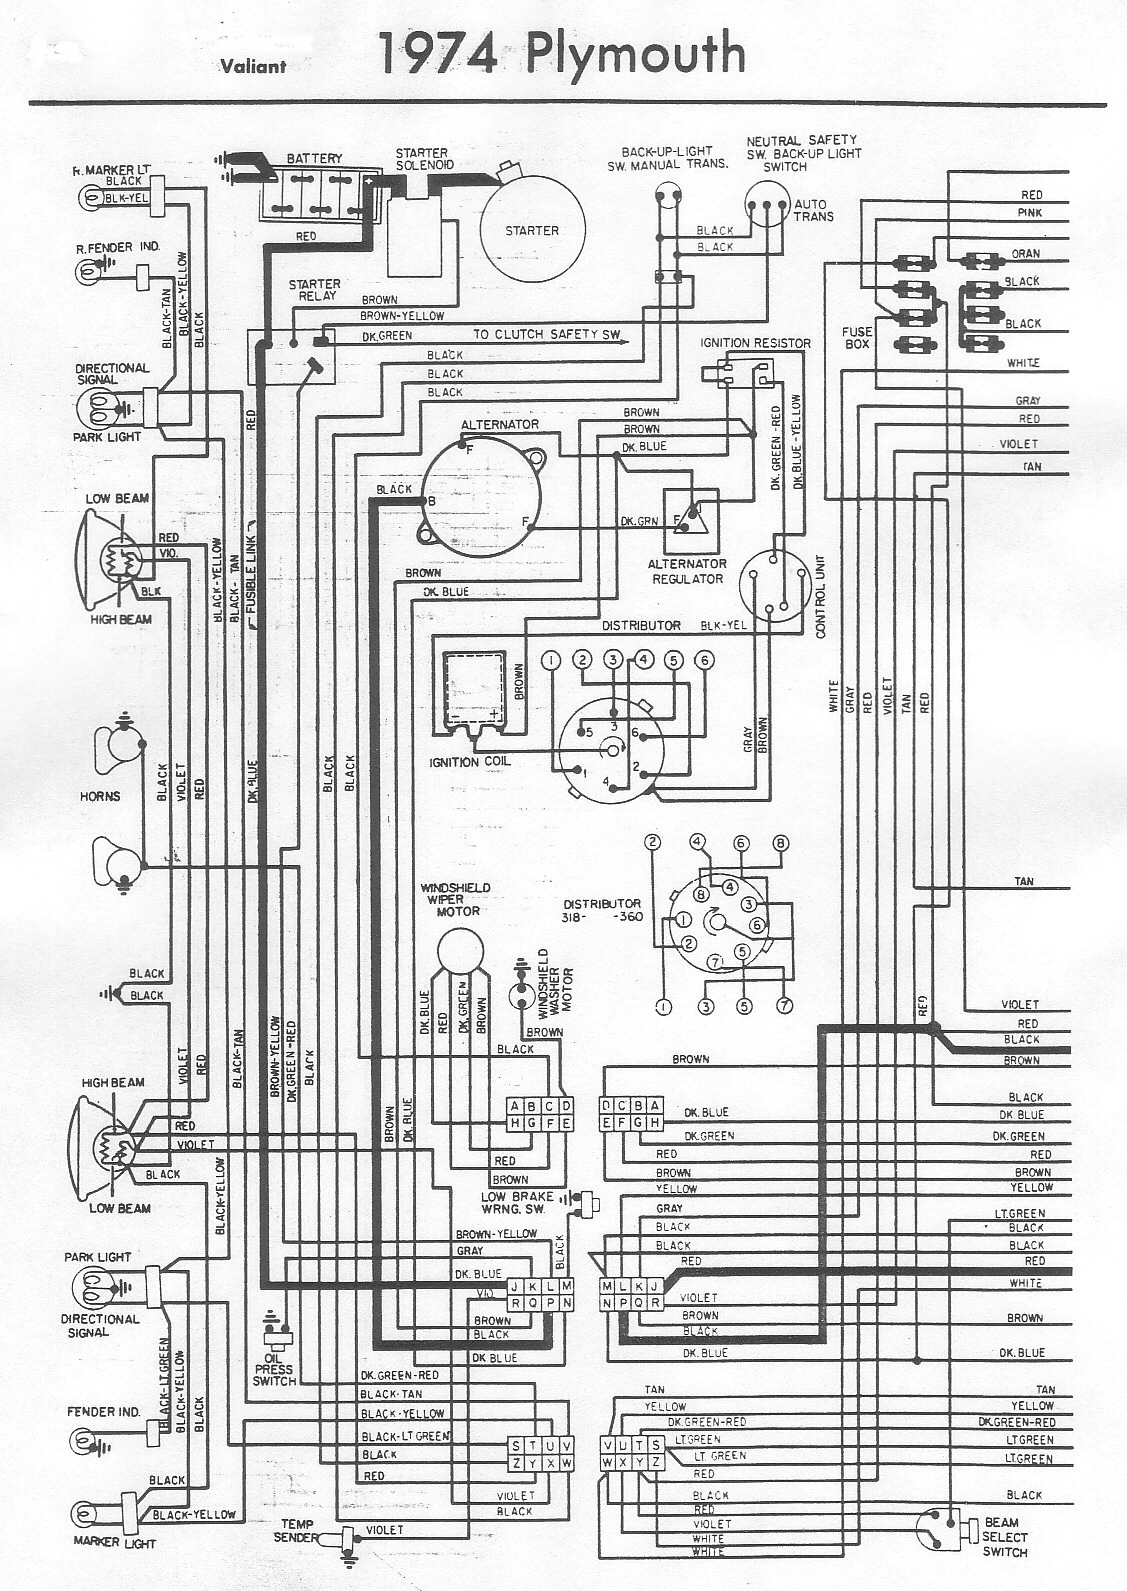 1948 Ford F1 Wiring Harness Diagram Library 72 Midget For 1968 Dodge Dart Get Free Image